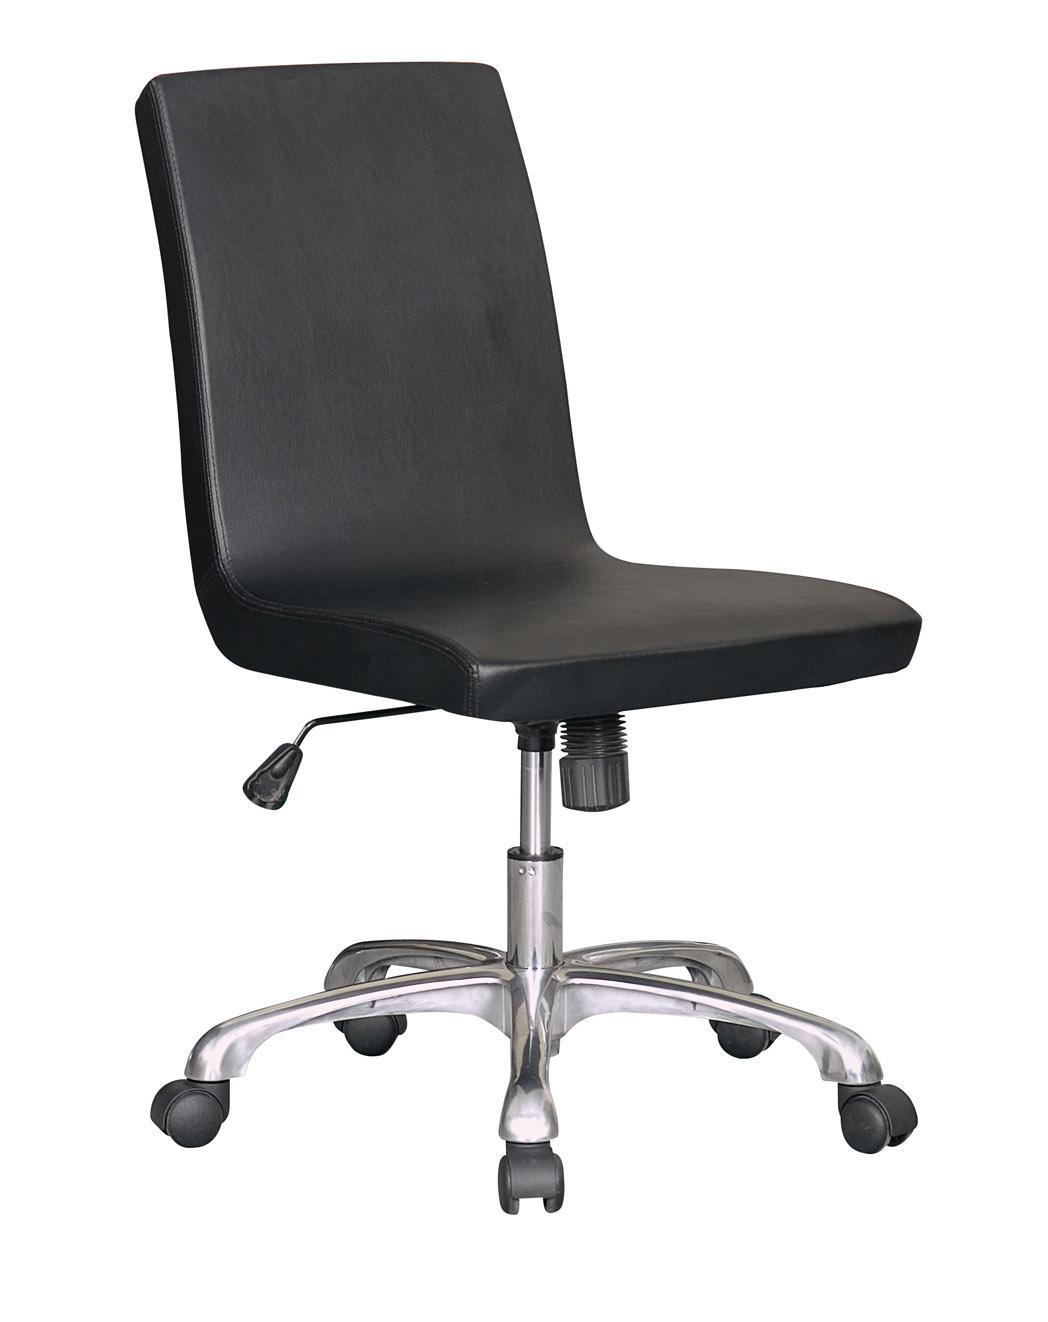 China Office Chair (HL-5111) - China Office Chair, Meeting Chair